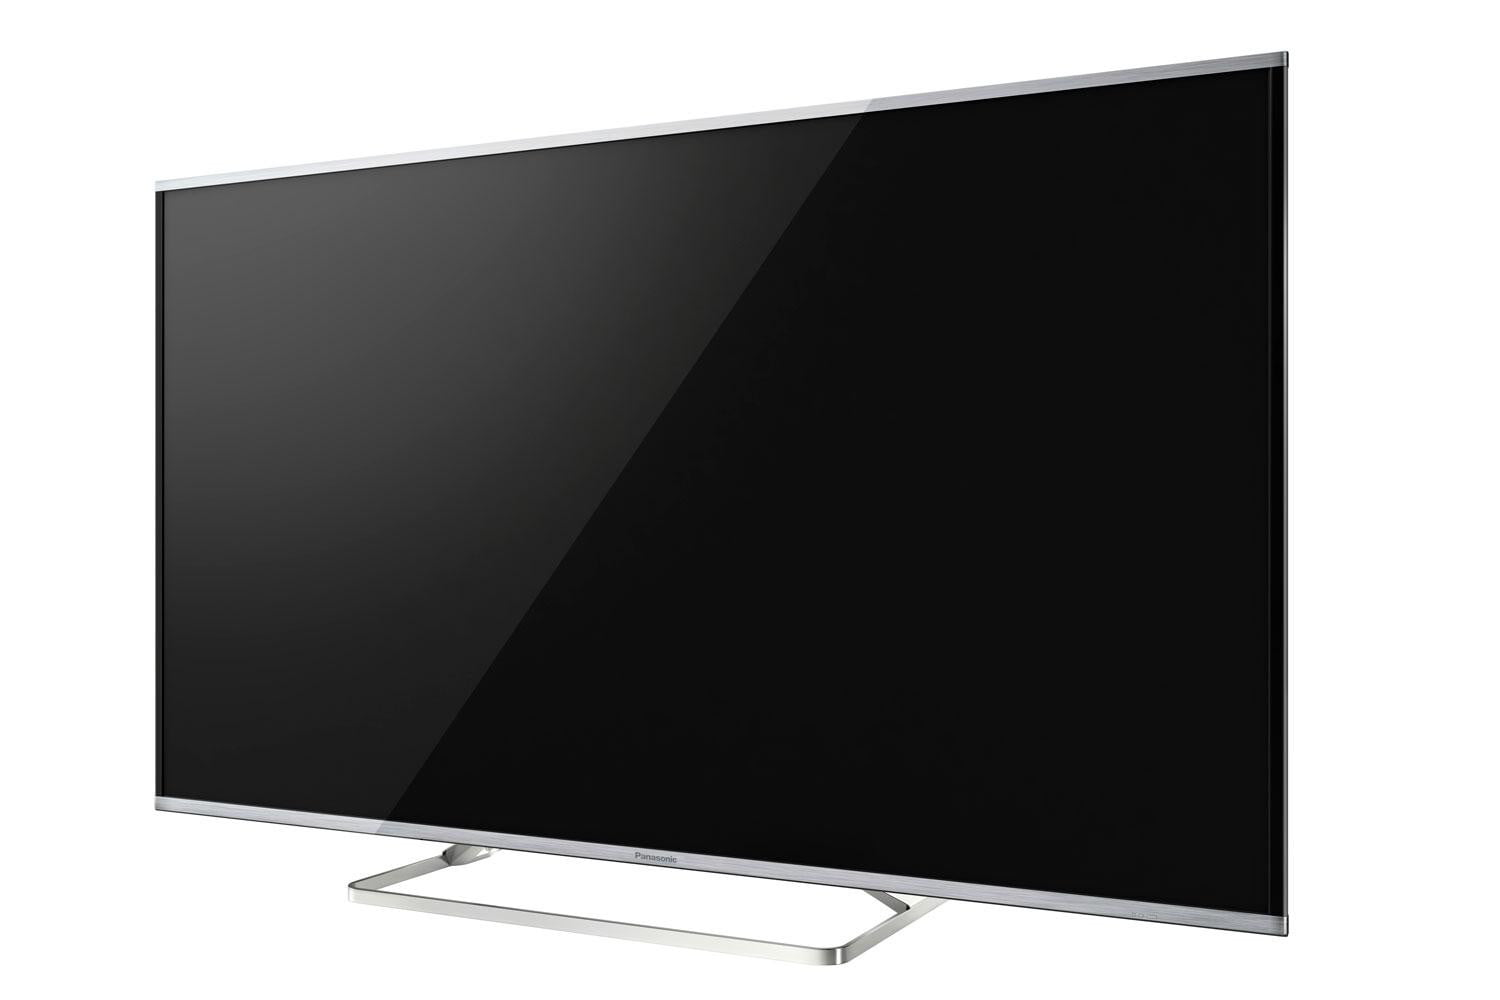 panasonic 39 s 85 inch tv is just the icing on its new 4k uhd cake digital trends. Black Bedroom Furniture Sets. Home Design Ideas